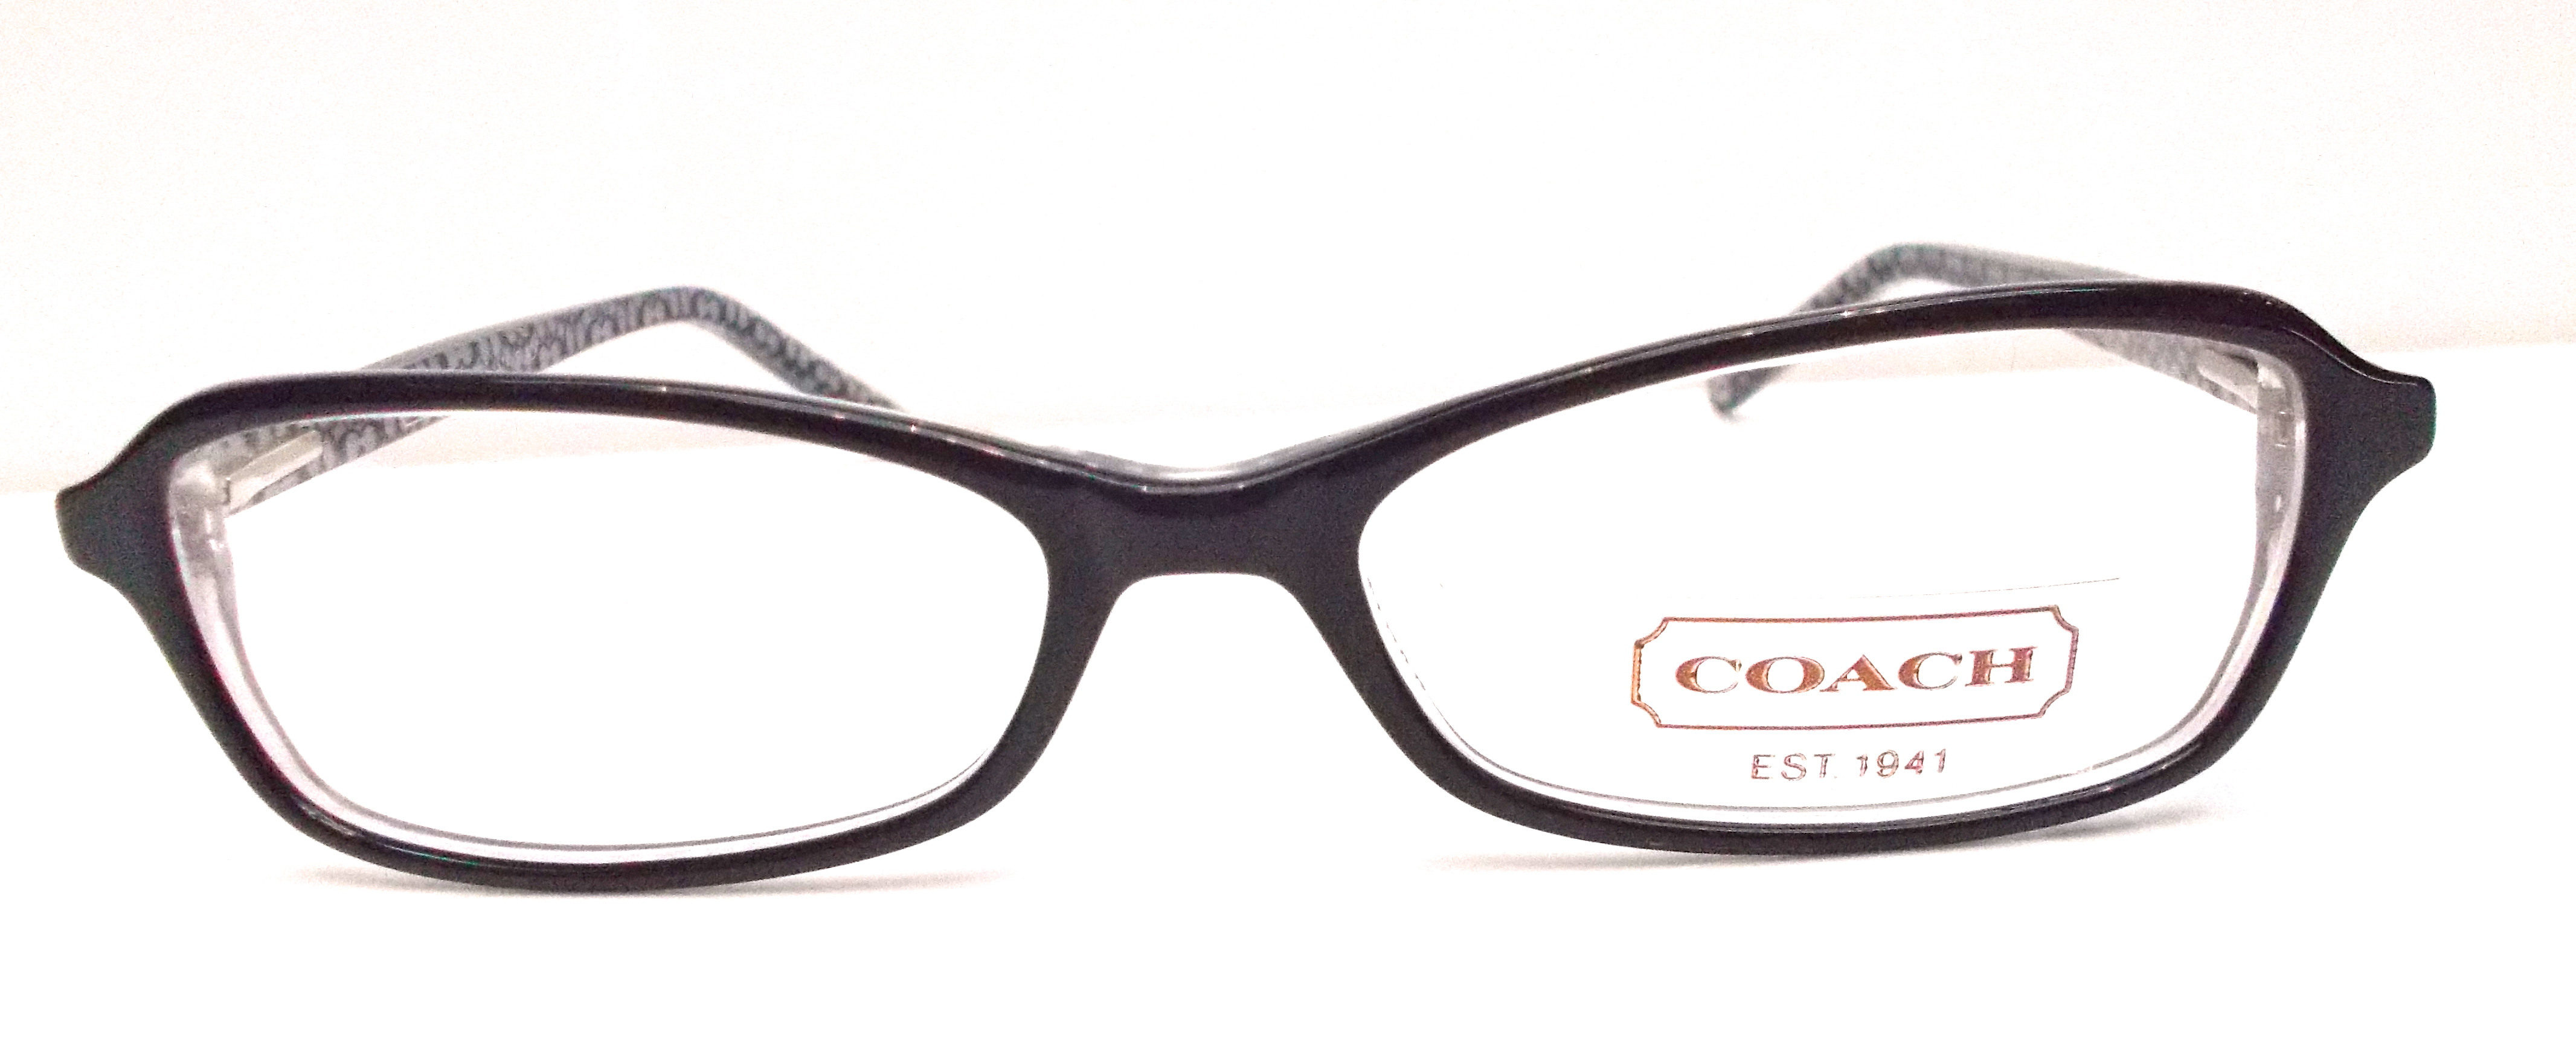 Coach Eyeglasses Lizzie  514  Black - Thumbnail 1Coach Prescription Glasses